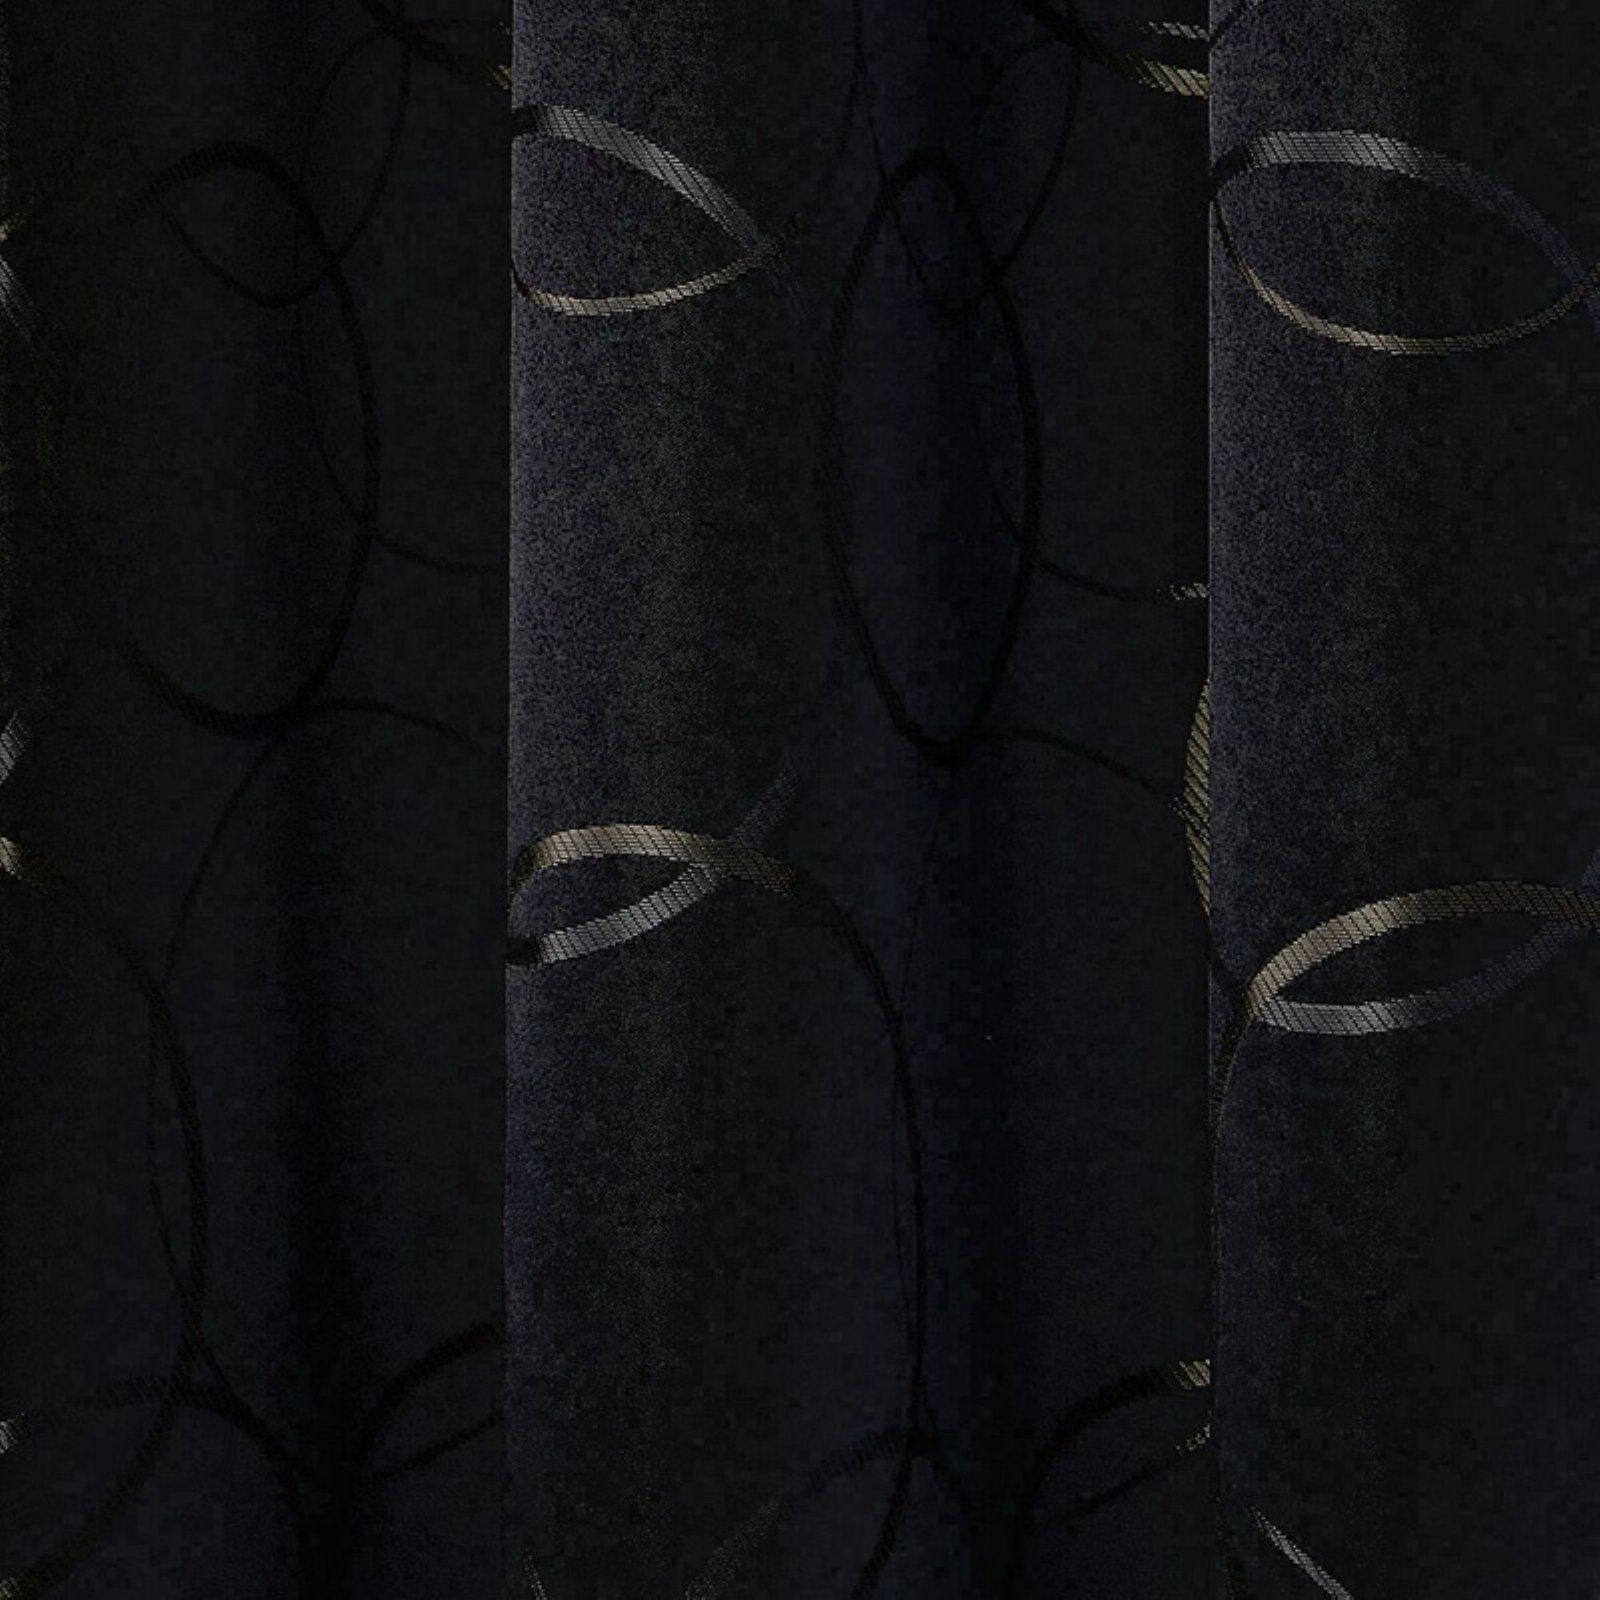 Eclipse Meridian Blackout Window Curtain Panel Regarding Meridian Blackout Window Curtain Panels (View 16 of 20)